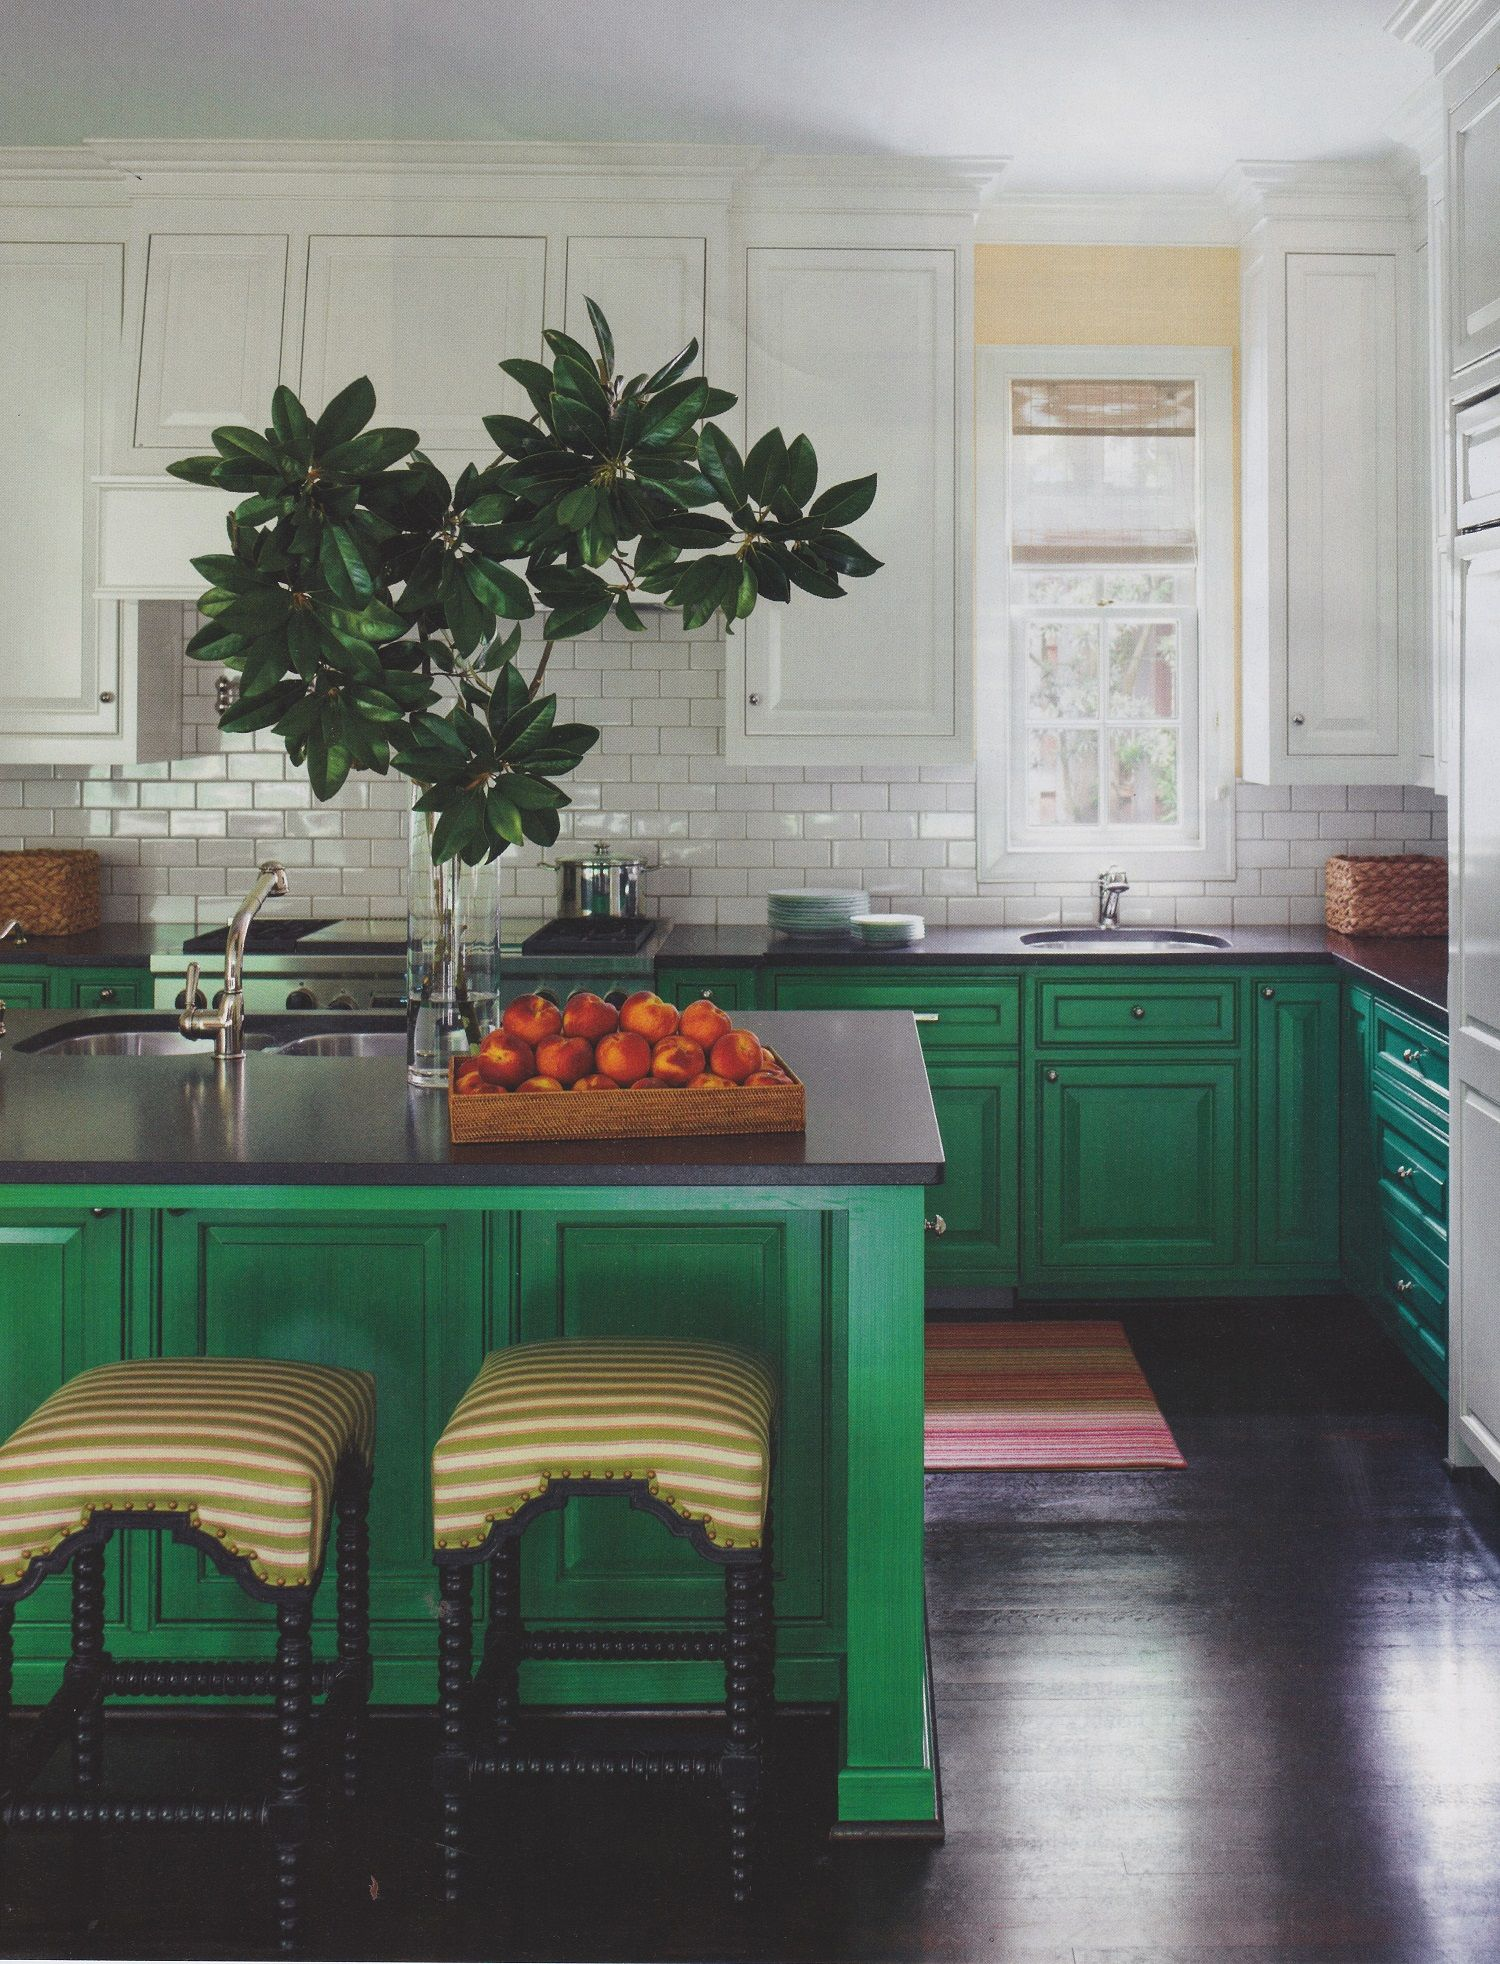 Kitchen With White Upper Cabinets And Green Lower Cabinets Green Island Design By J Randall Pow Green Kitchen Cabinets Upper Kitchen Cabinets Kitchen Design